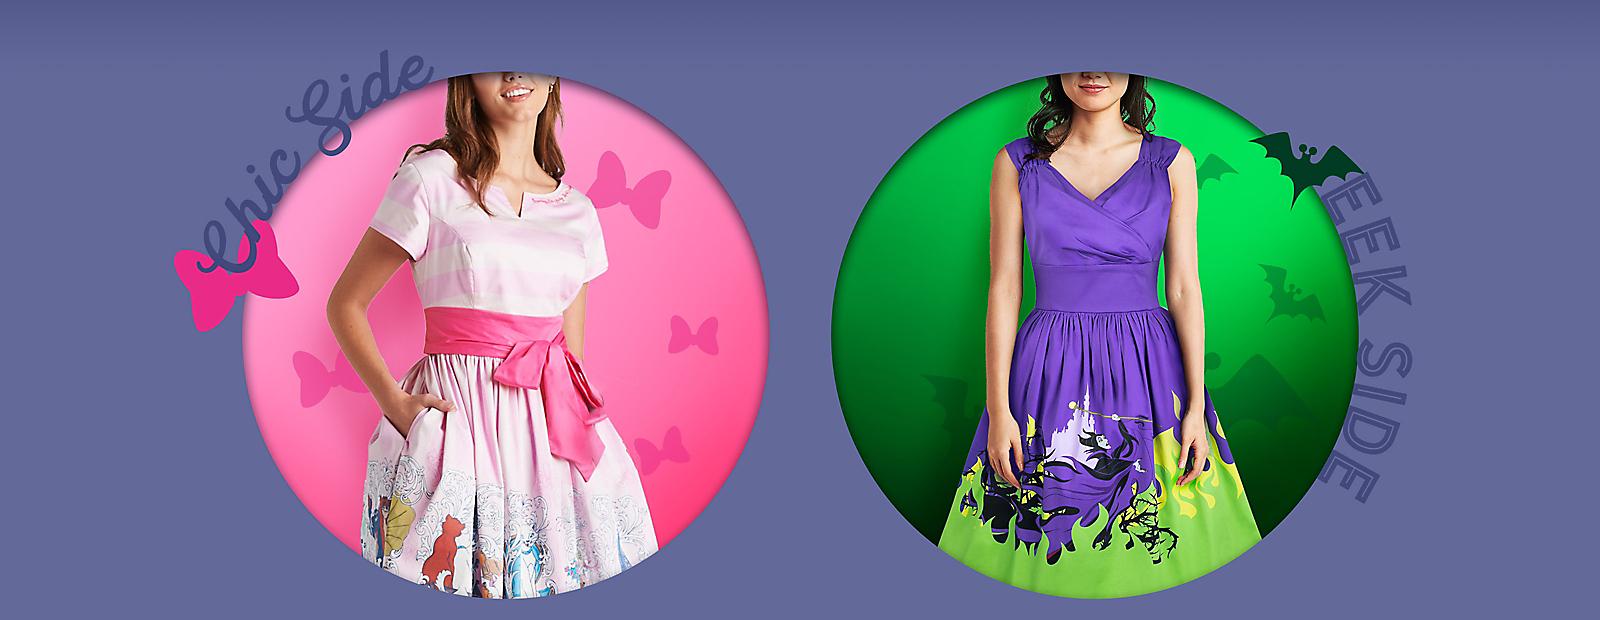 Chic Side Woman in Aristocats dress Eek Side Woman in Haunted Mansion dress